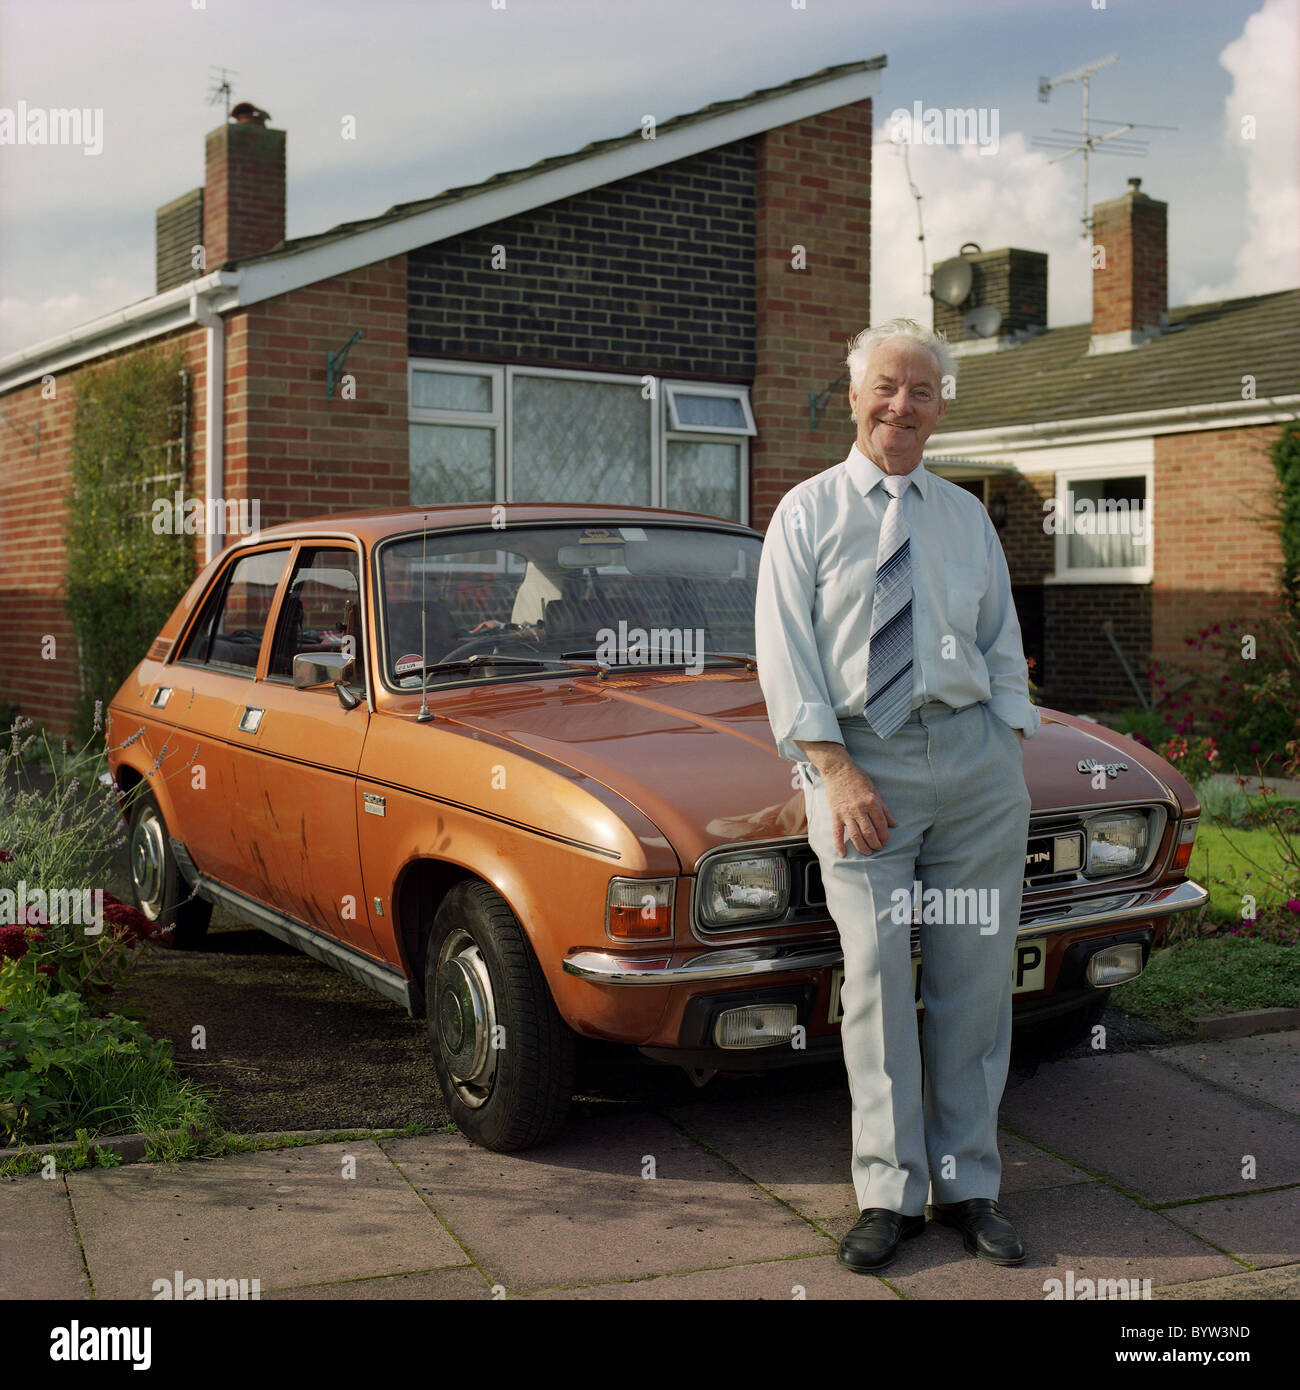 1970s Austin Allegro and owner, Worthing, West Sussex, UK - Stock Image